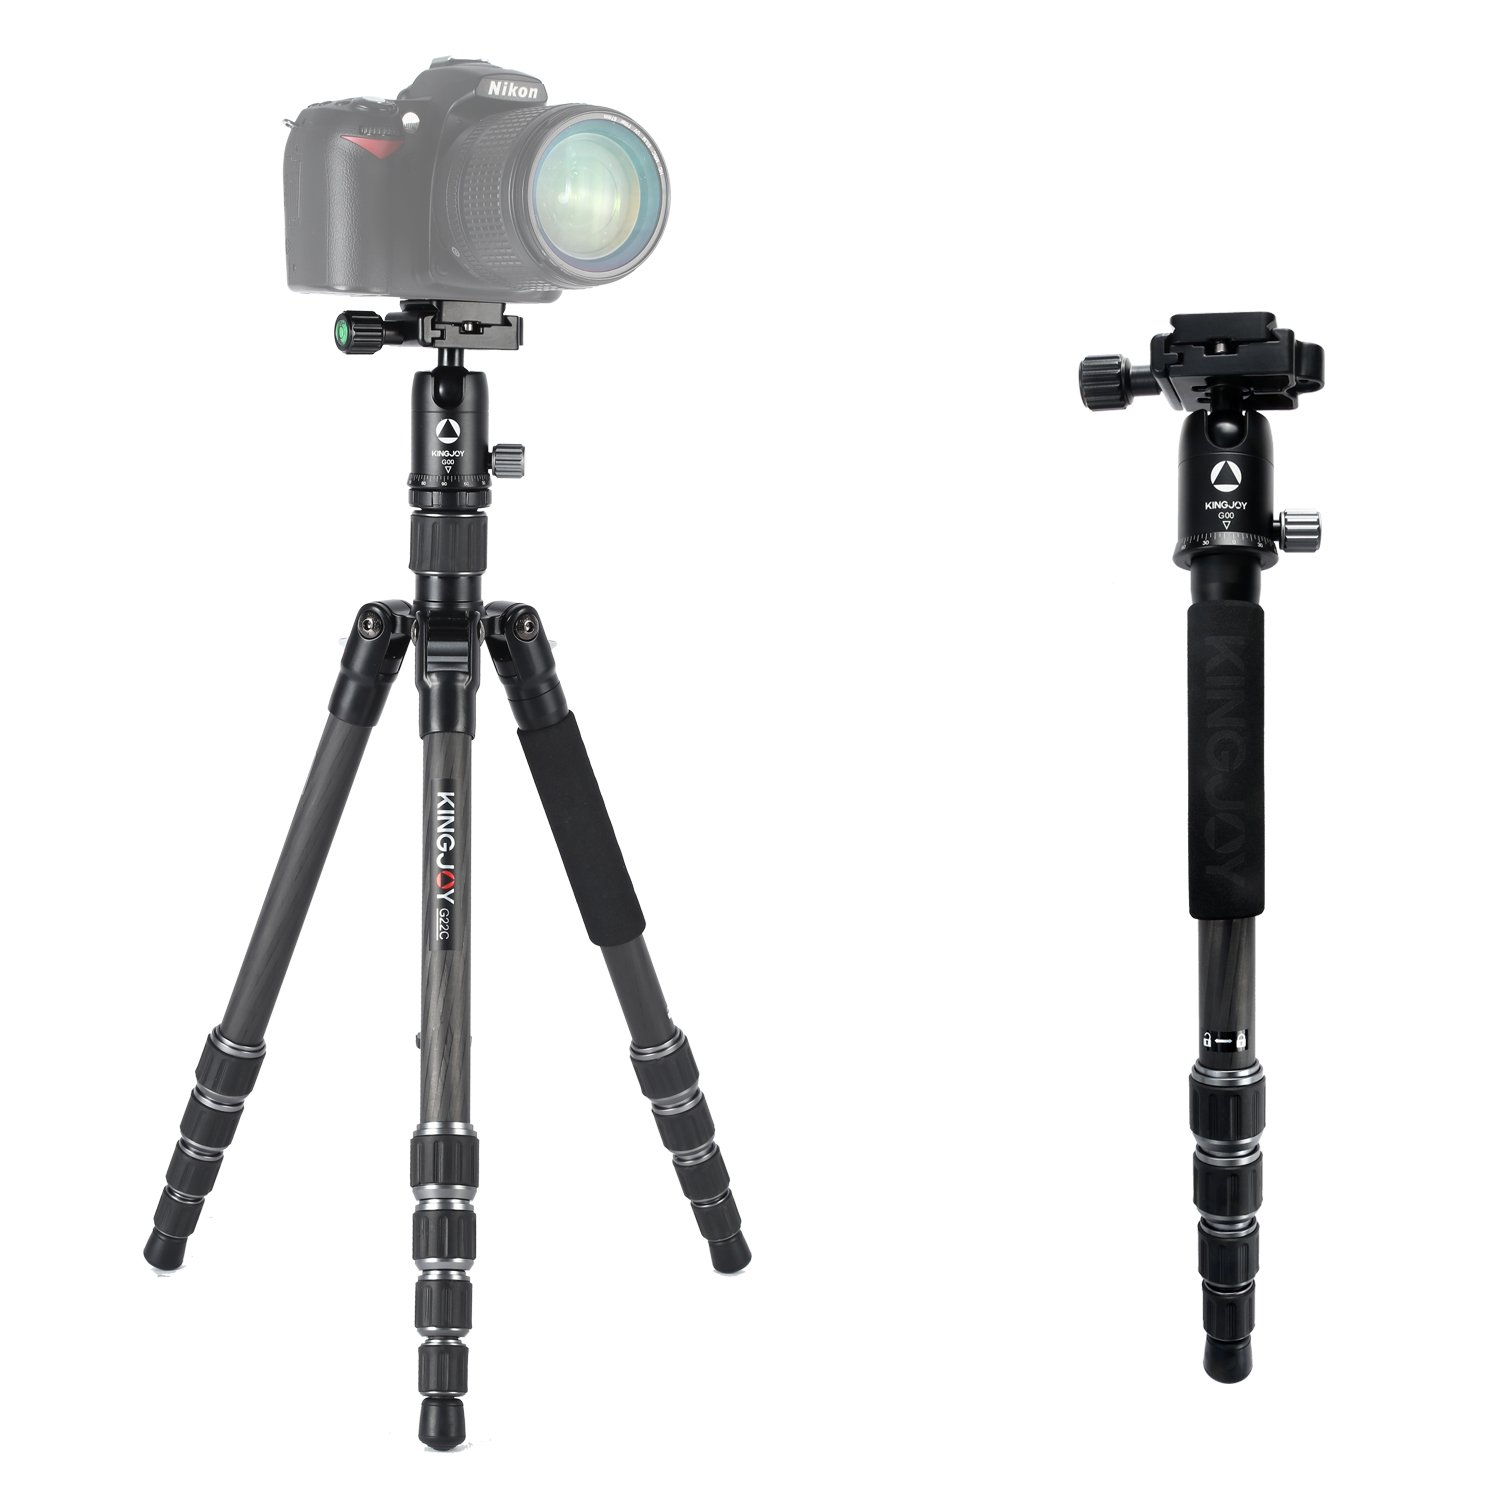 Carbon Fiber Portable Camera Tripod Monopod Trekking Stick,KINGJOY Portable Detachable Tripod with Ball Head and Quick Release Plate for for DSLR Camera, Video Camcorder, Load up to 22lbs/10kg